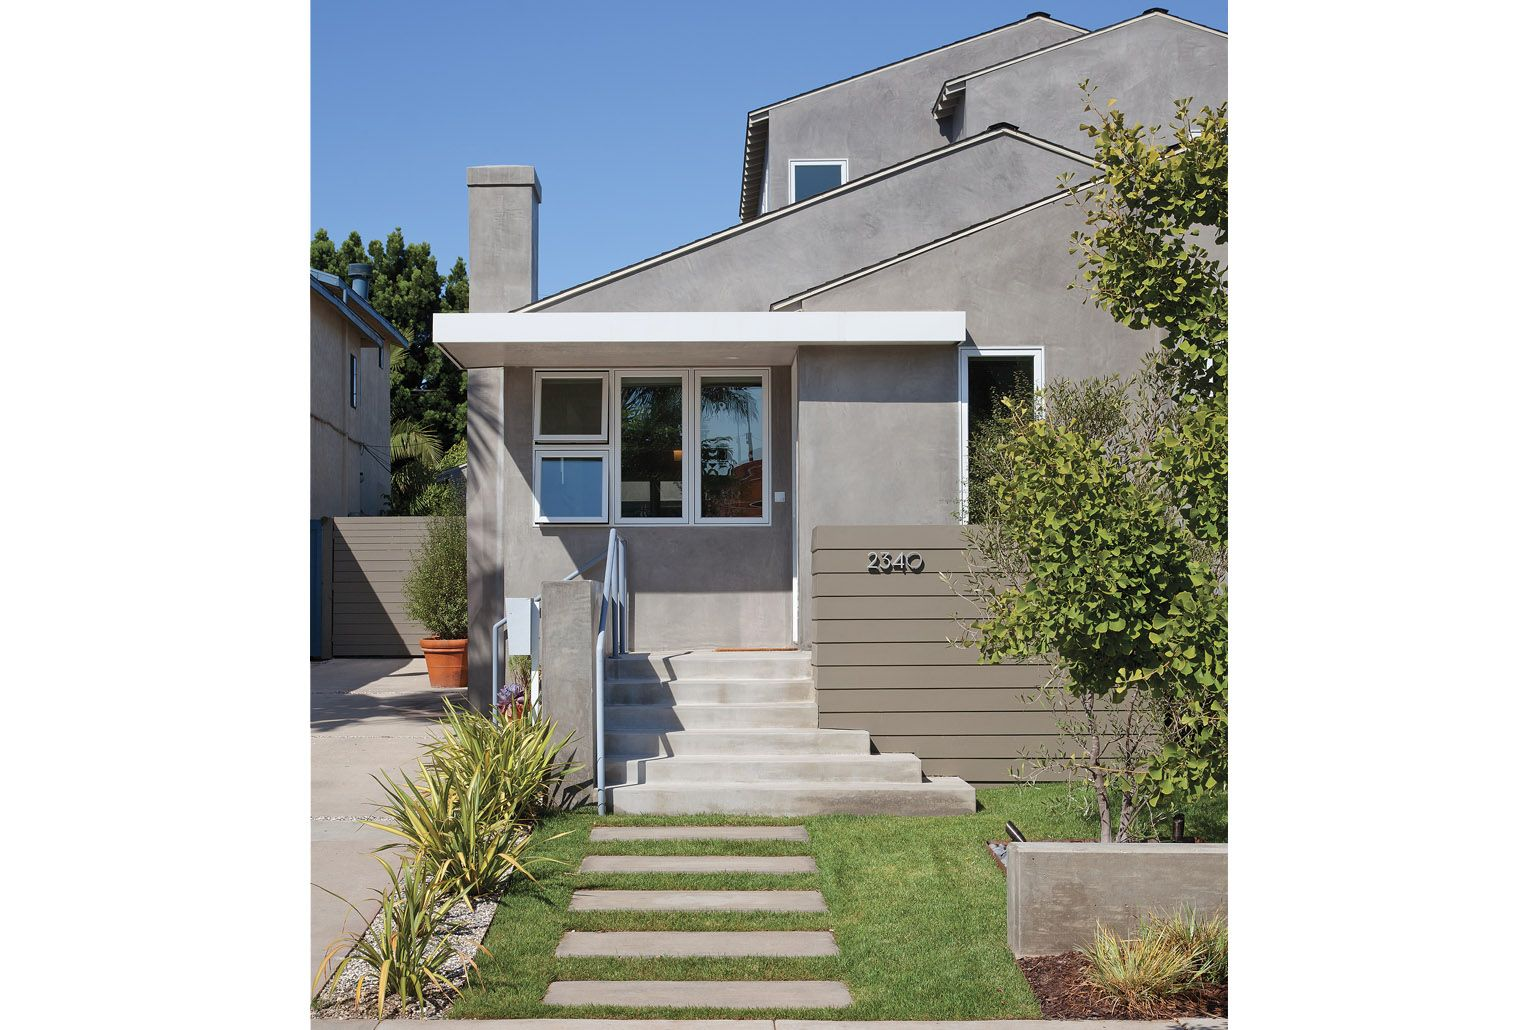 Krista Becker Designed Our Best Remodel Of The Year, A Complete Reinvention  Of A 1930s Bungalow In Southern California.